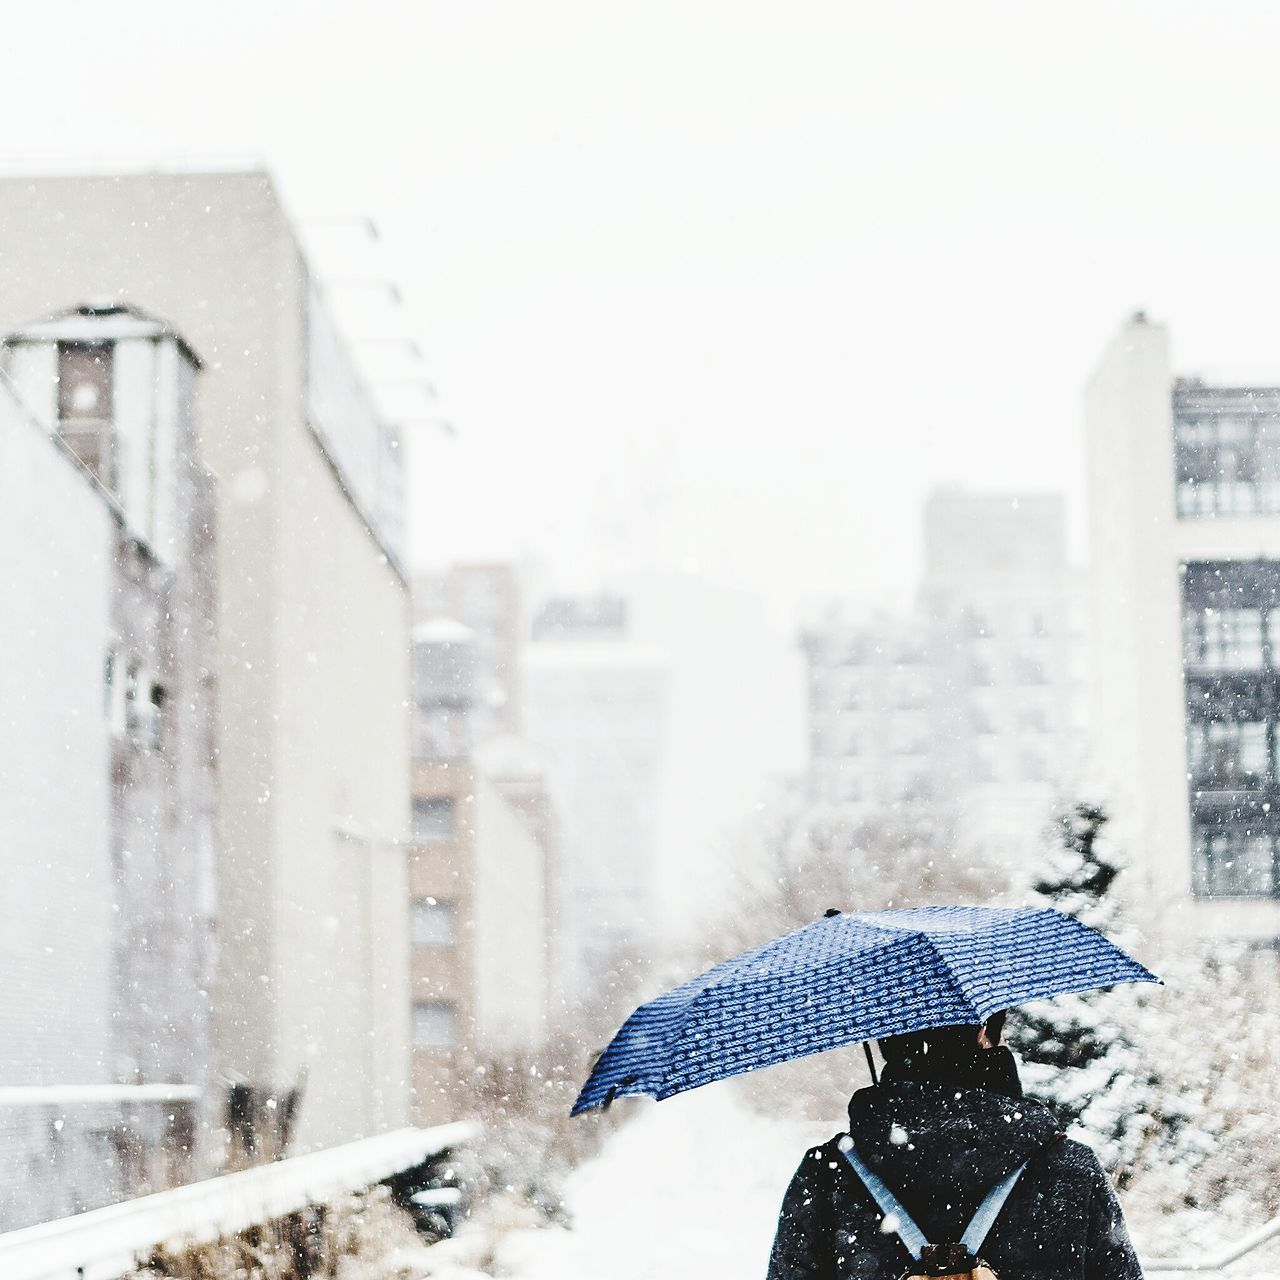 Rear View Of Man With Umbrella Walking On Snow Covered City Against Clear Sky